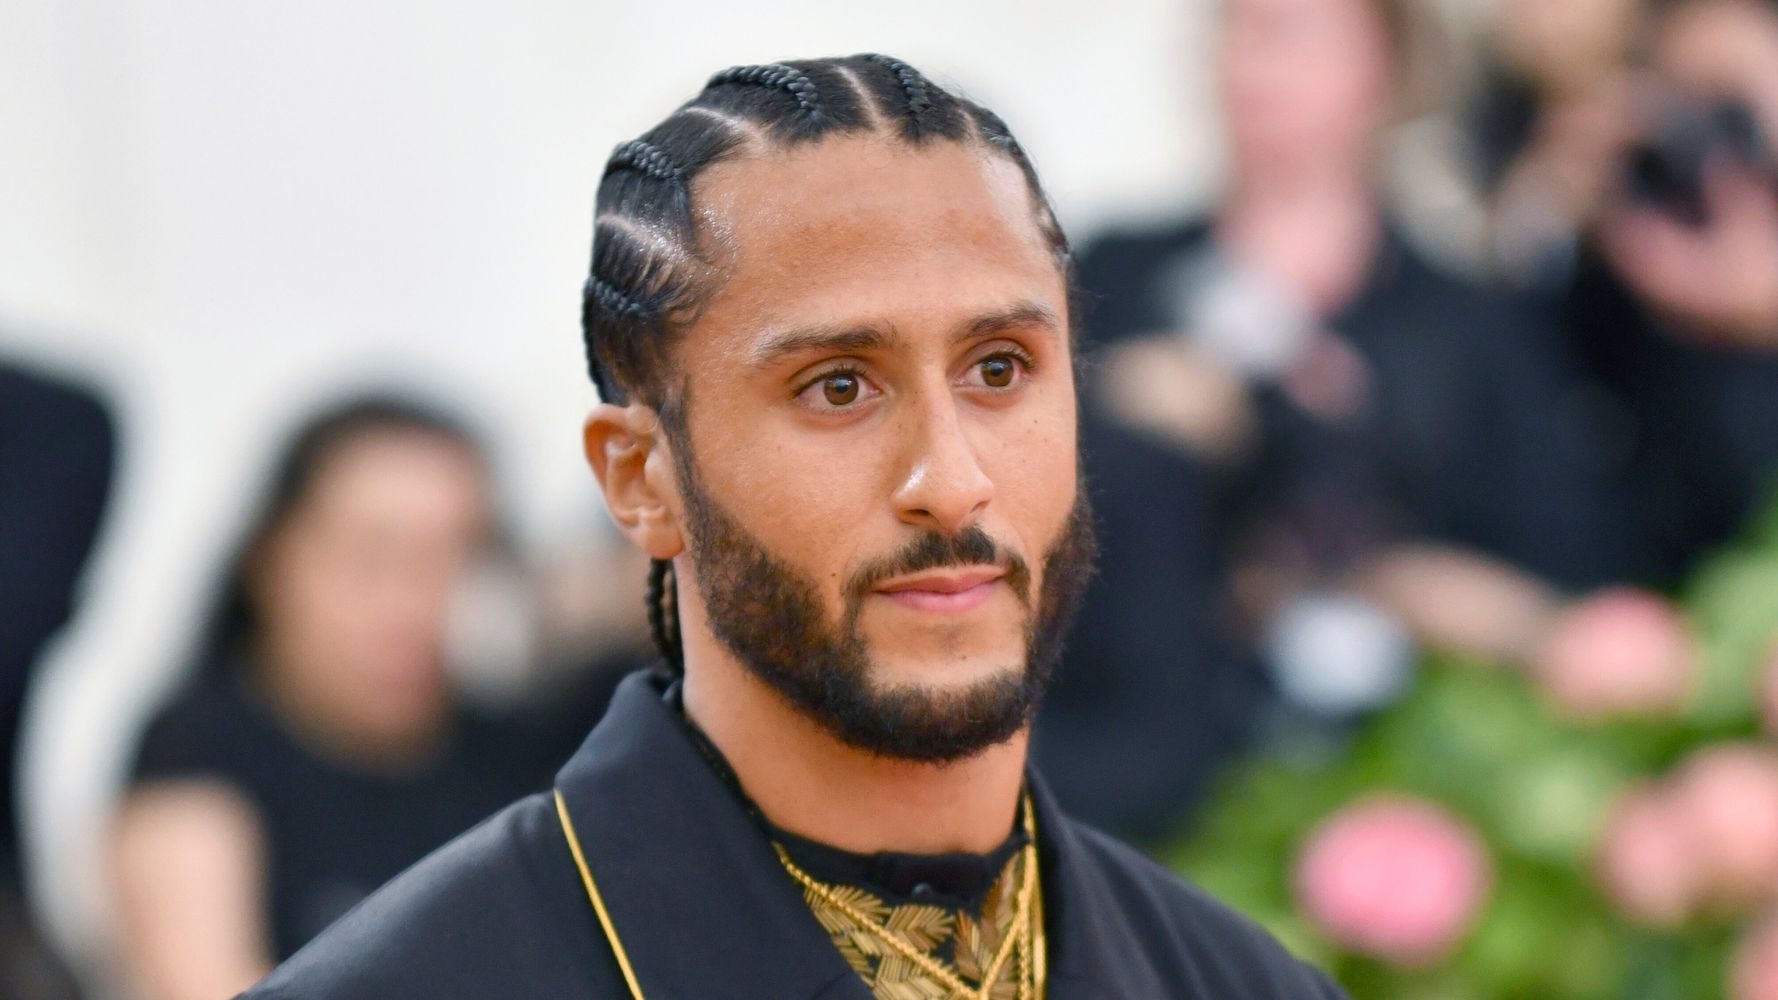 Westlake Legal Group 5d54938a2400009a01b80703 Colin Kaepernick Marks 3rd Anniversary Of National Anthem Protest With Video